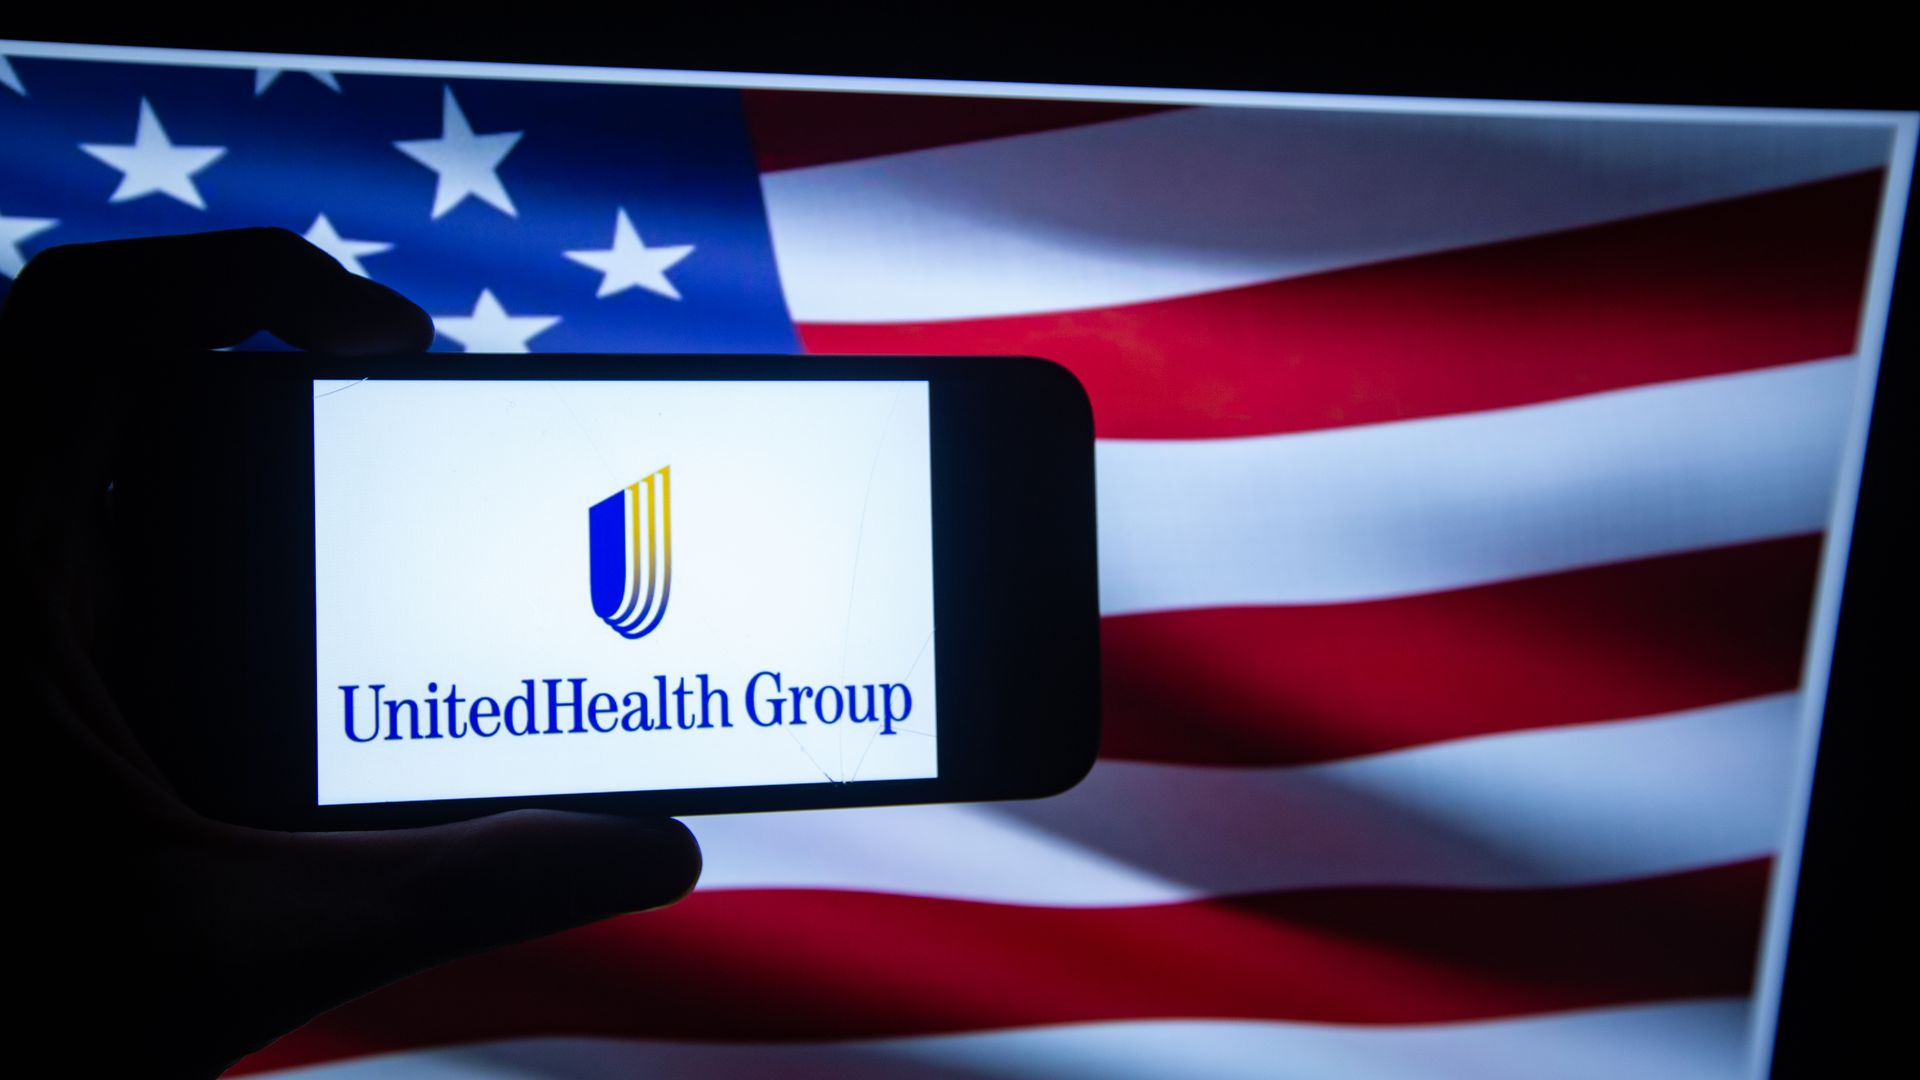 MAn holding phone that has united health group logo on it